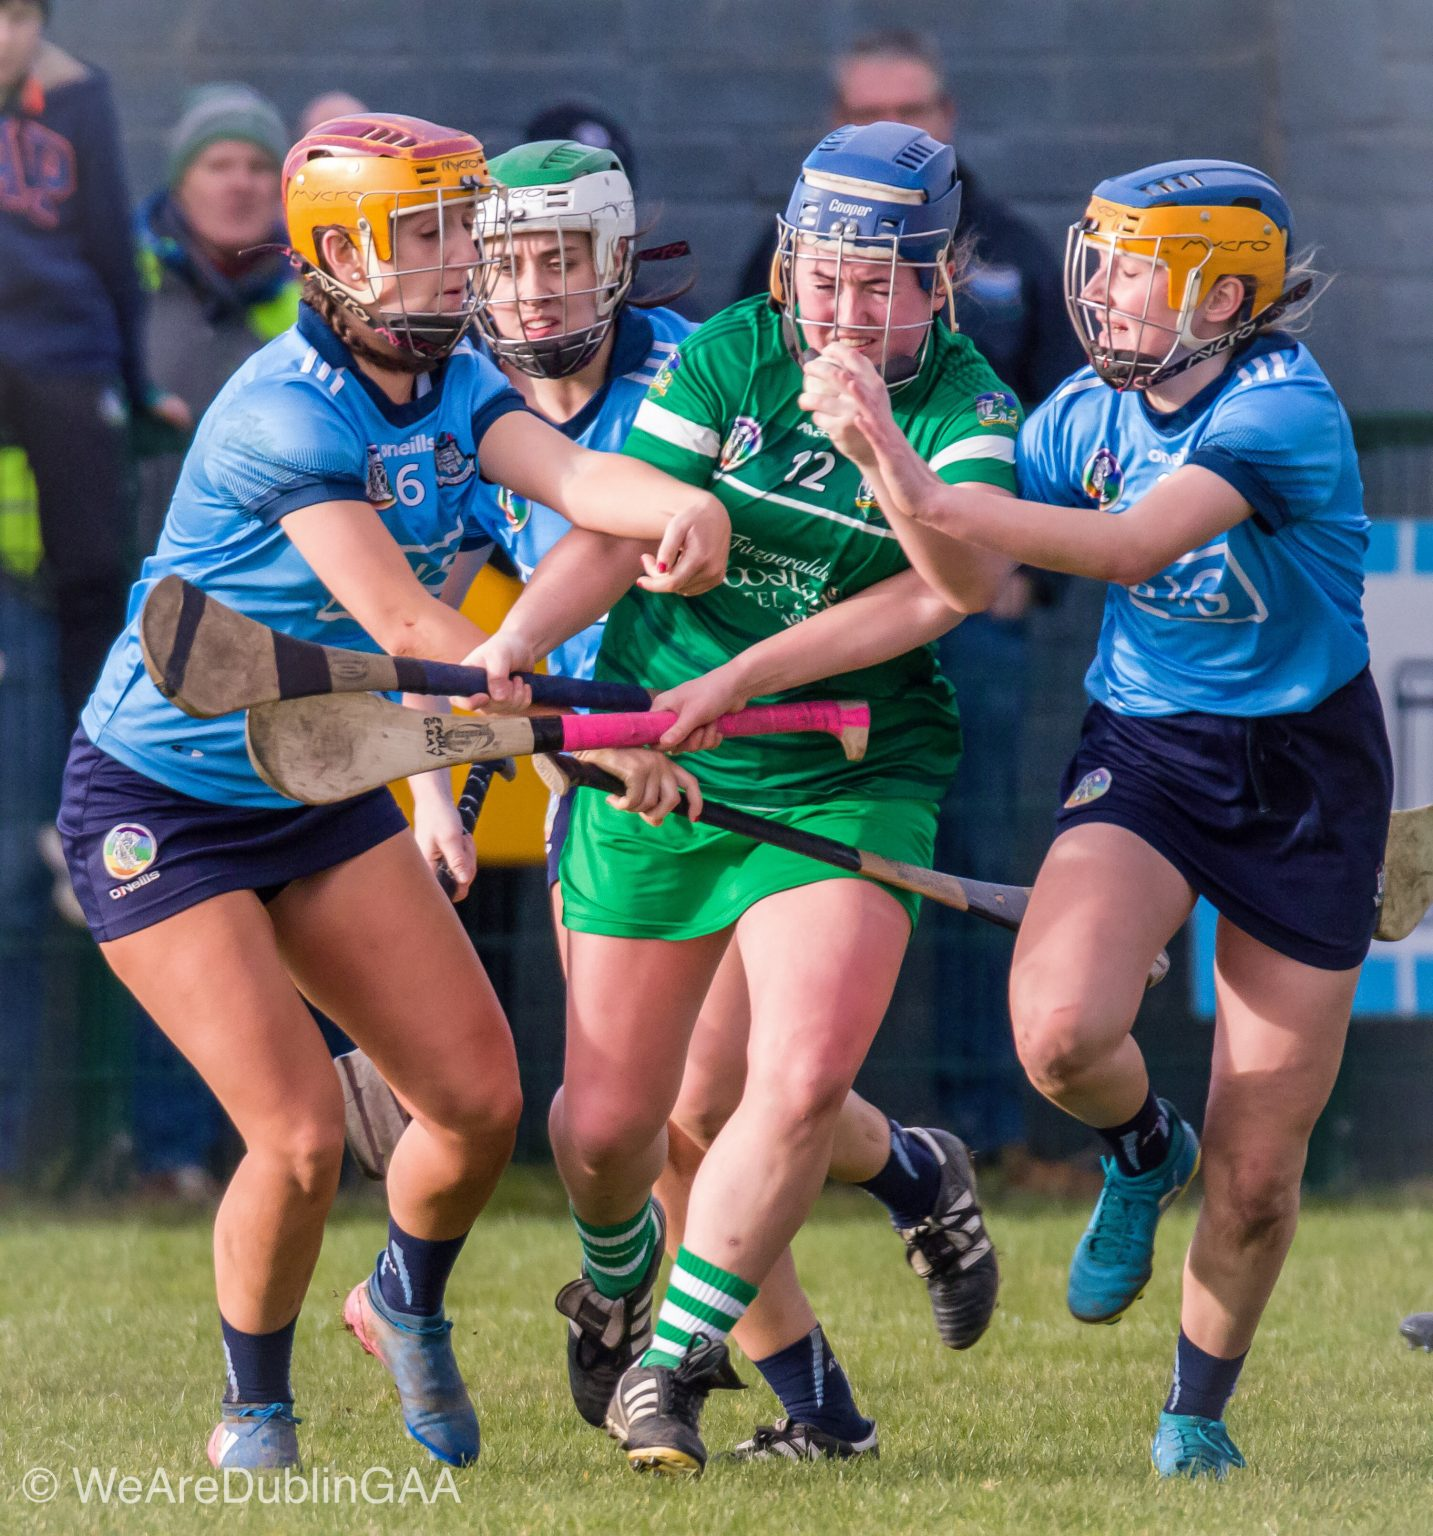 Two Dublin Camogie Players in sky blue jerseys and navy skorts tackle a Limerick player in a green Jersey and green skort in the Dublin Seniors League game in Division 1